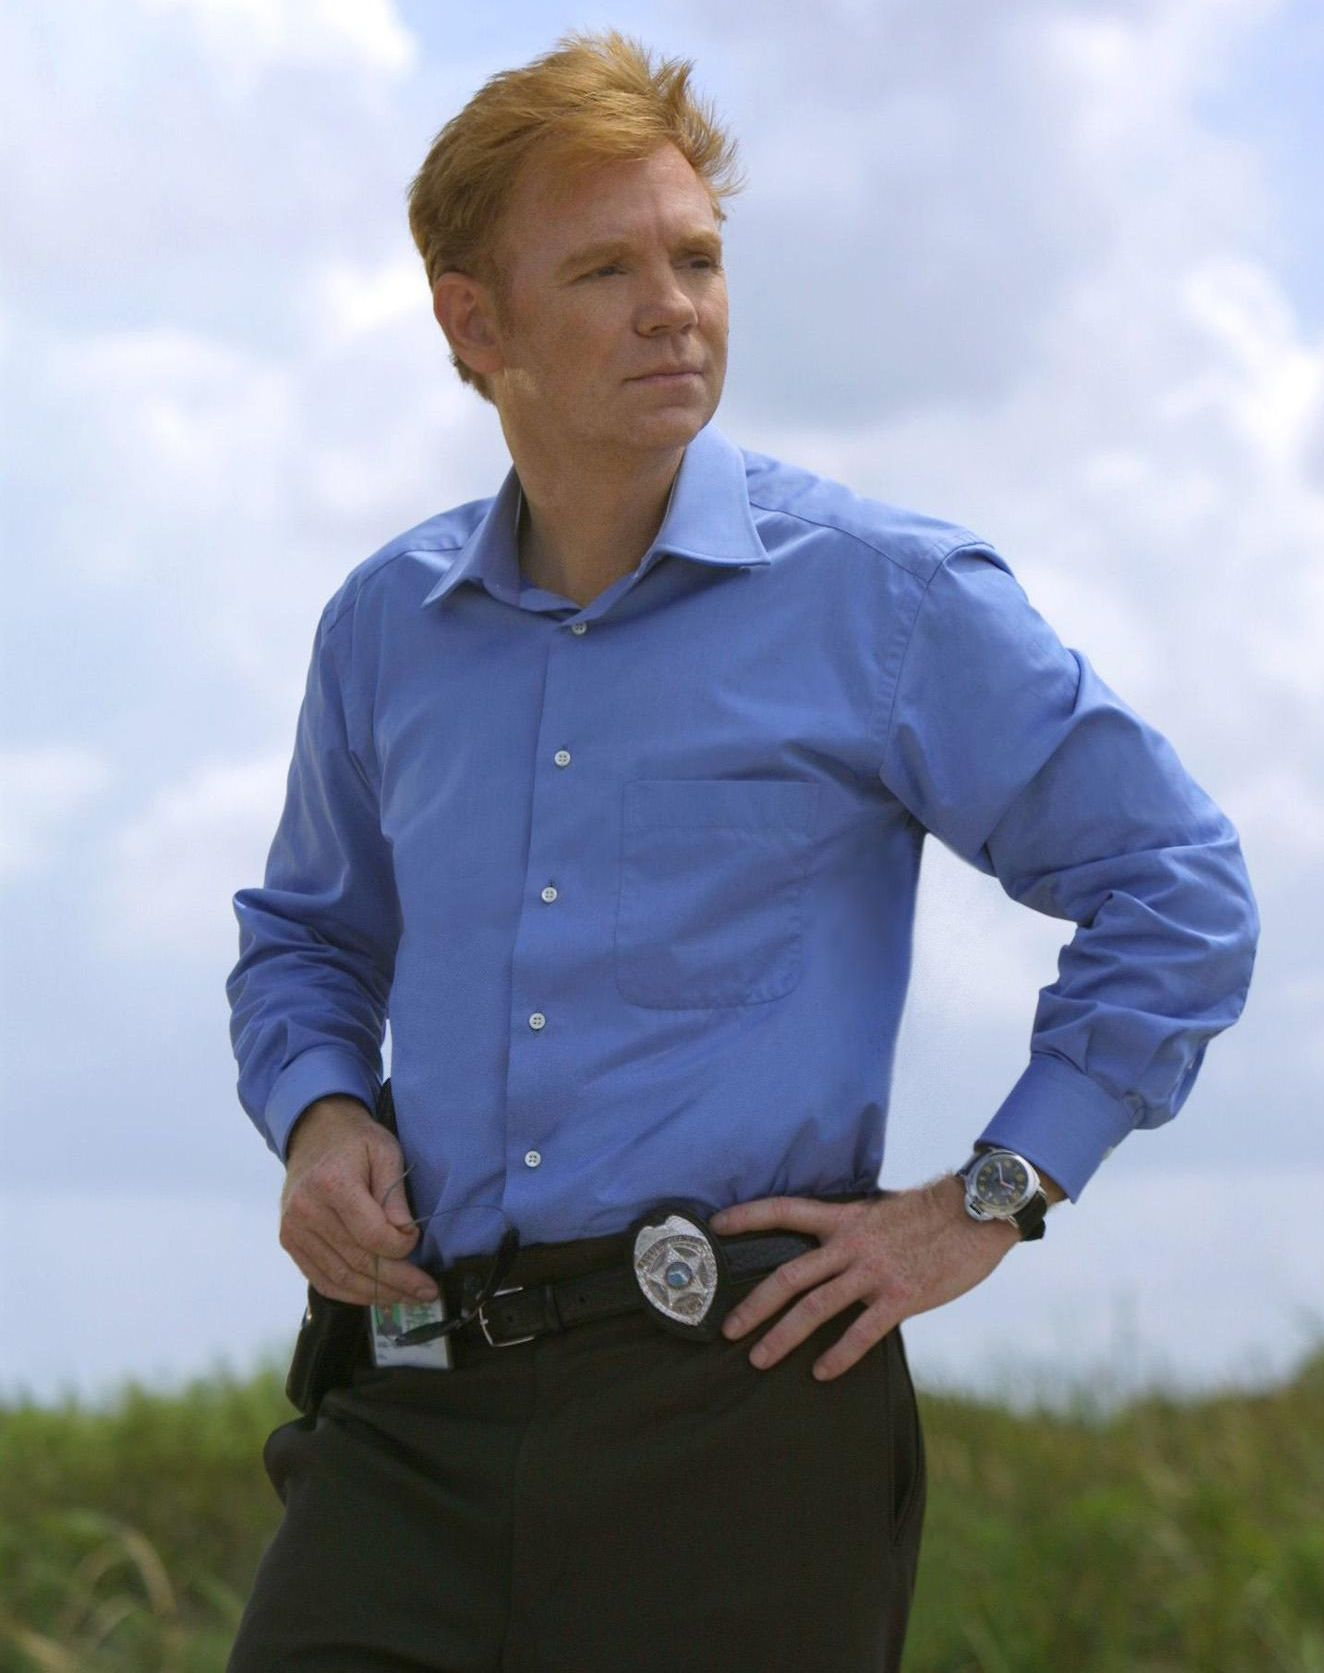 \u200bDavid Caruso as Horatio Caine standing in a field with his badge clipped to his belt